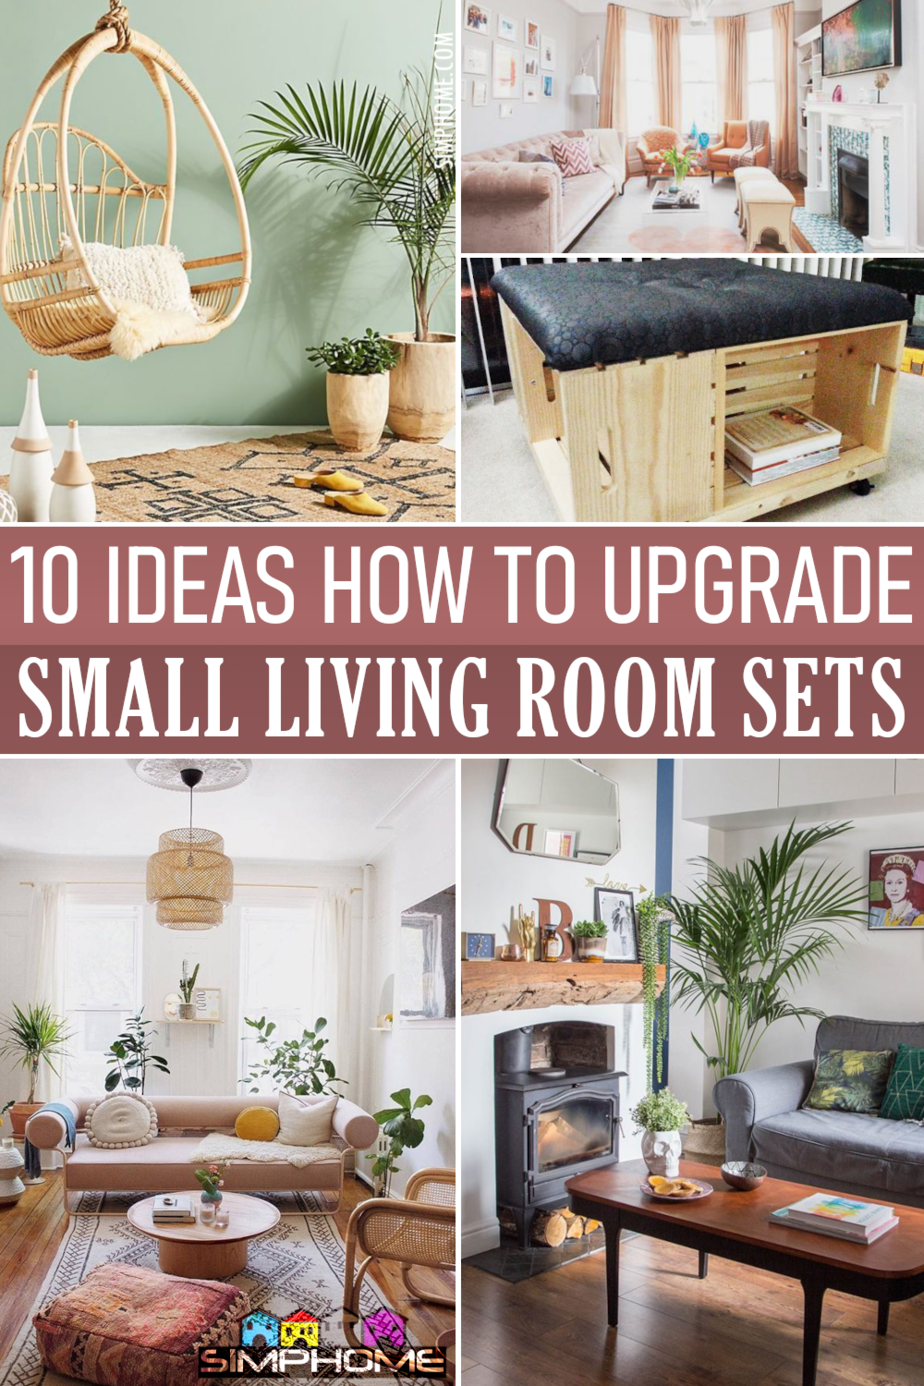 10 ideas how to upgrade and improve small living room set